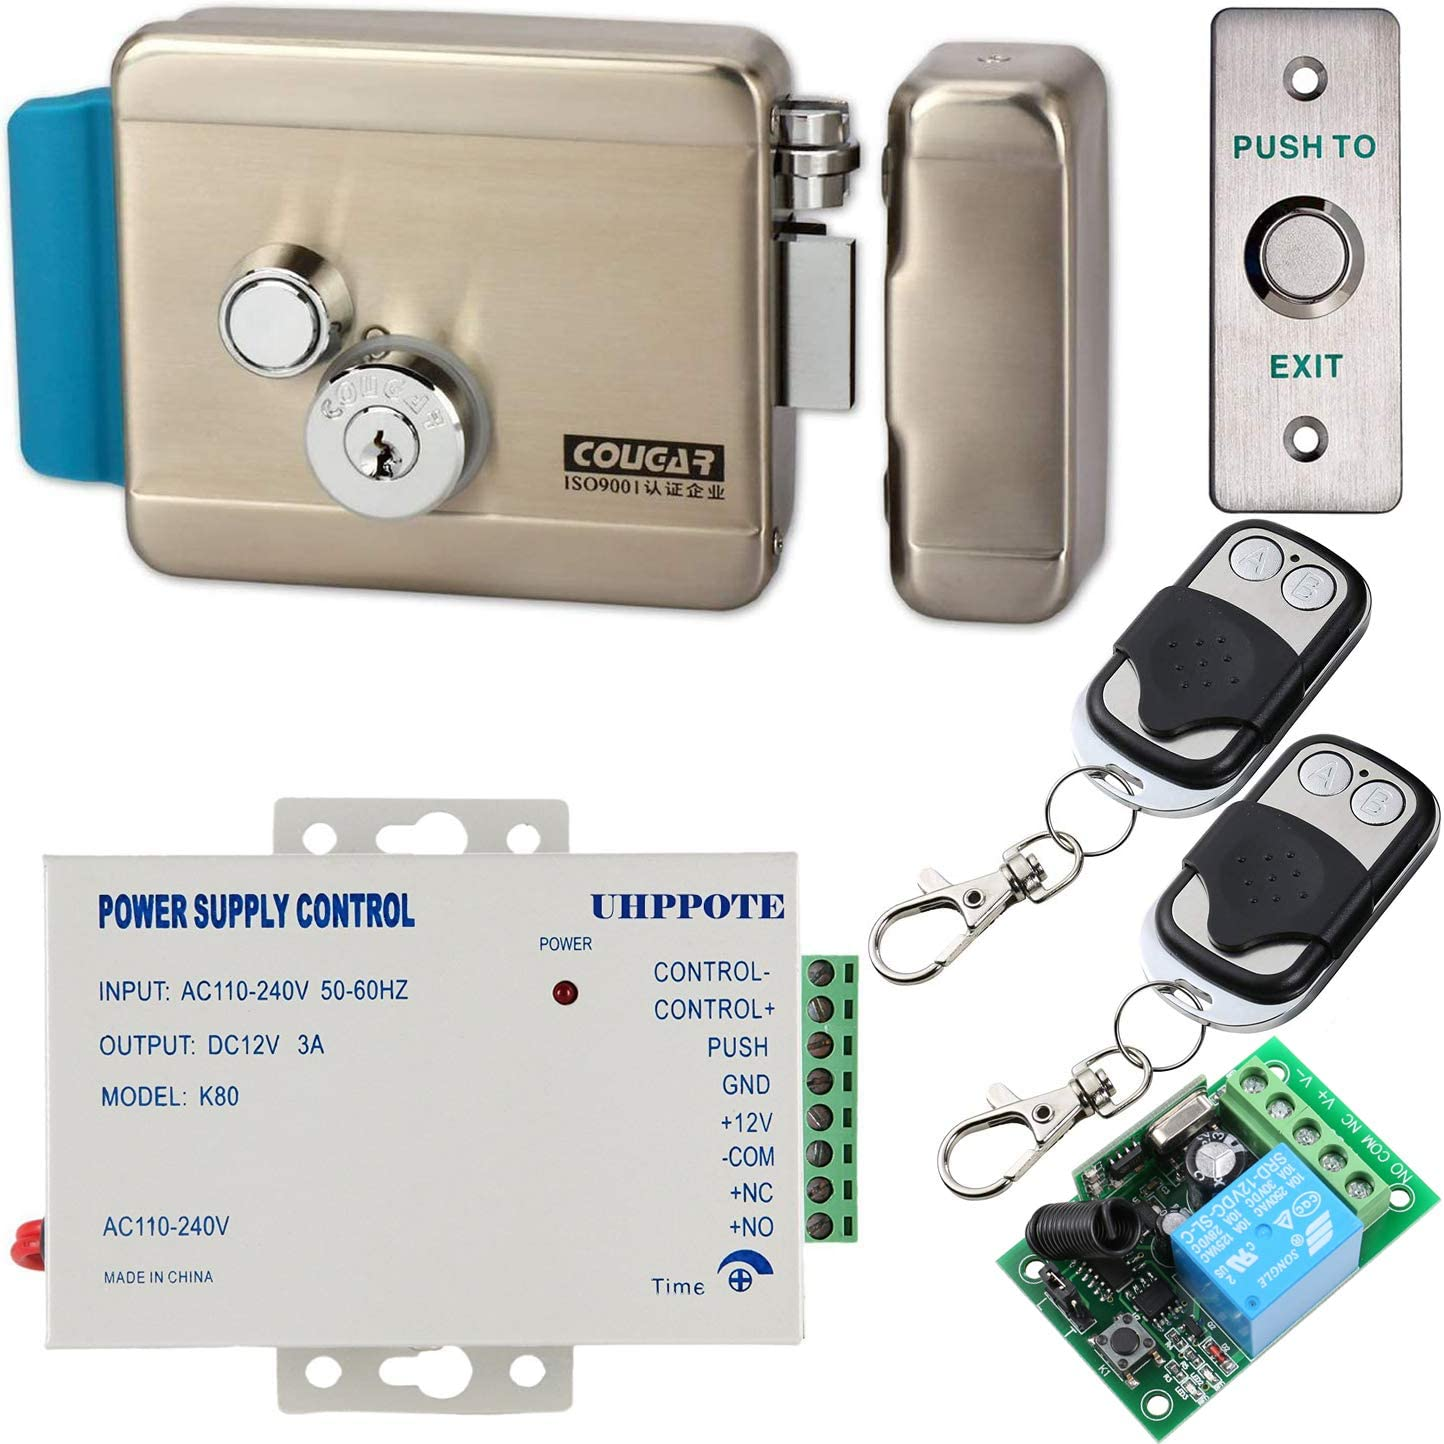 UHPPOTE Electric Door Lock with Wireless Remote Control for Intercom Access Control System